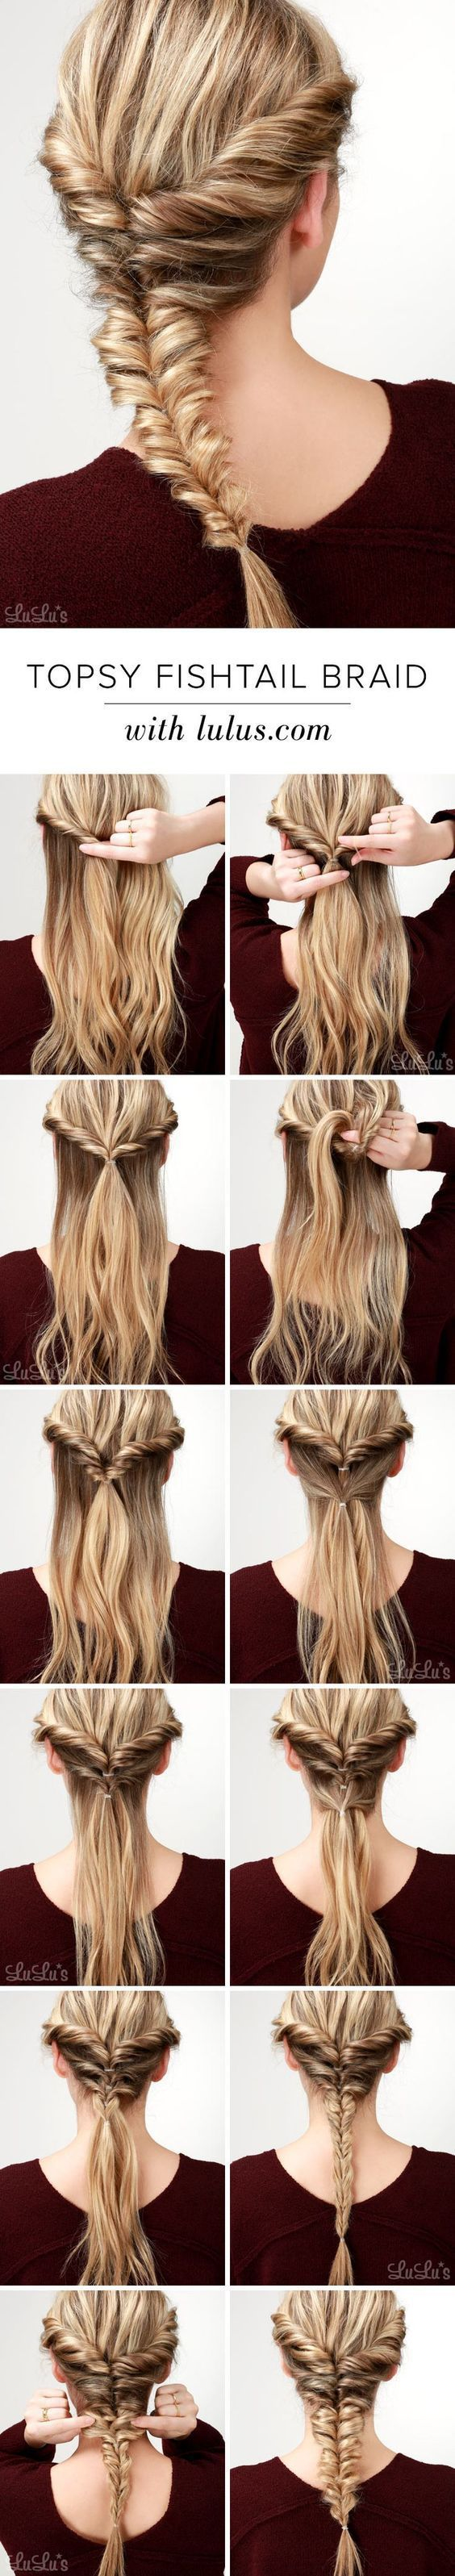 Of all different kinds of braids out there, I think the fishtail braid  might be my favorite. It's soft, romanti… | Hair styles, Cool braid  hairstyles, Hair tutorial